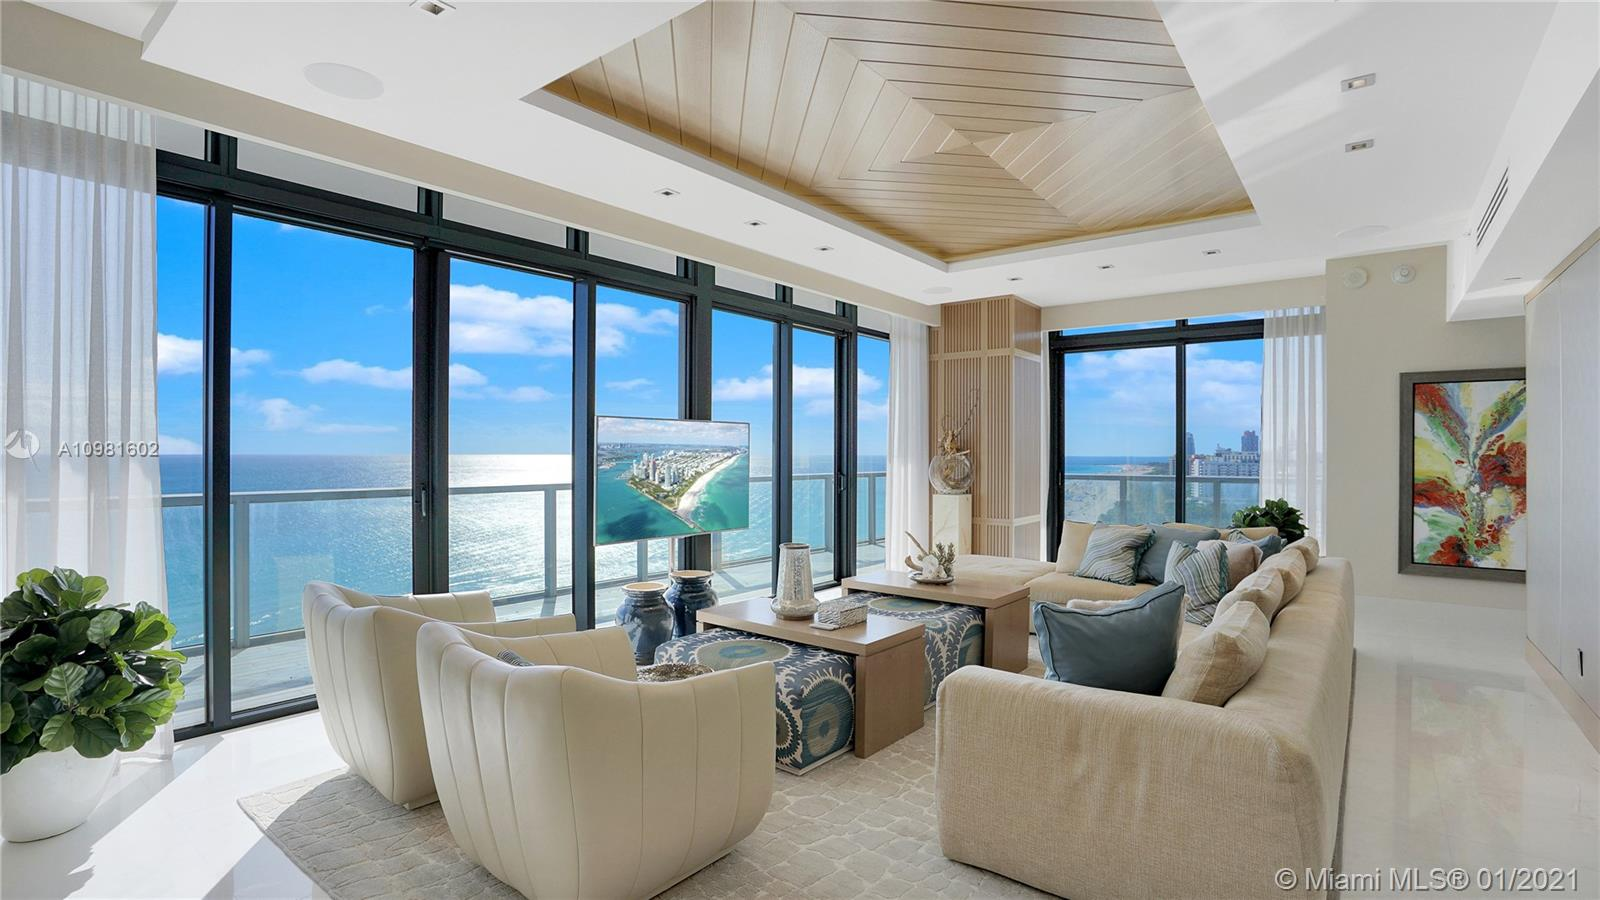 2201 Collins Ave, Unit #PH 1928 Luxury Real Estate